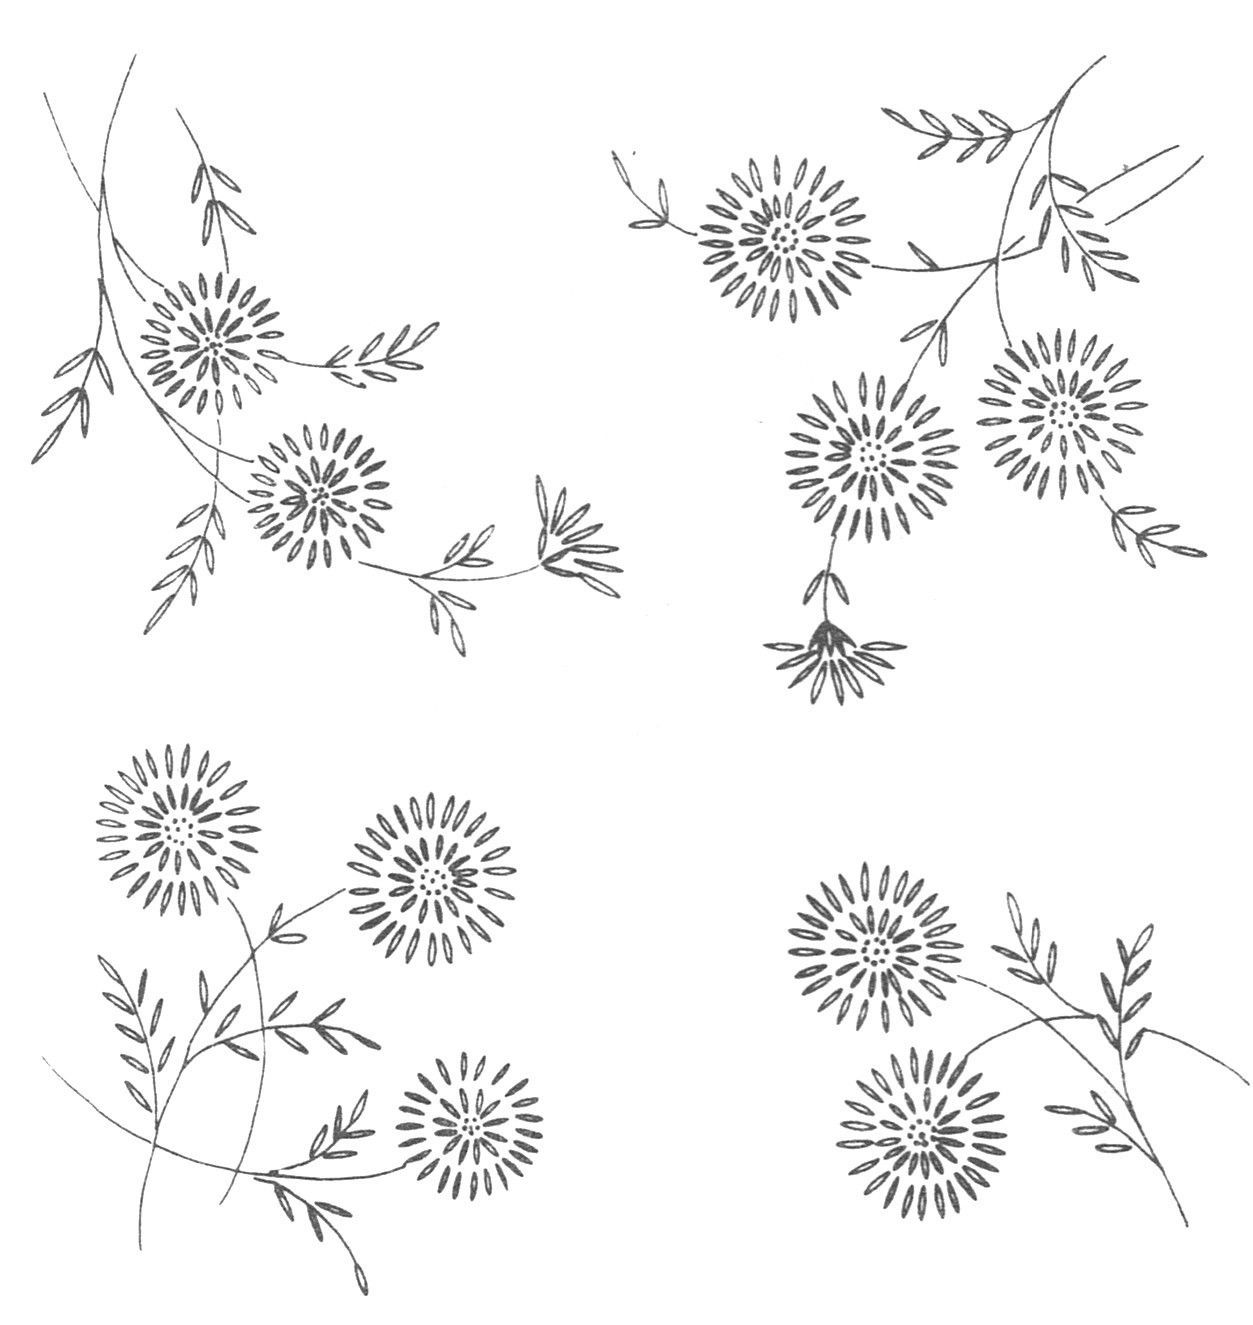 Vintage visage iron on embroidery transfer daisy style flower sprigs